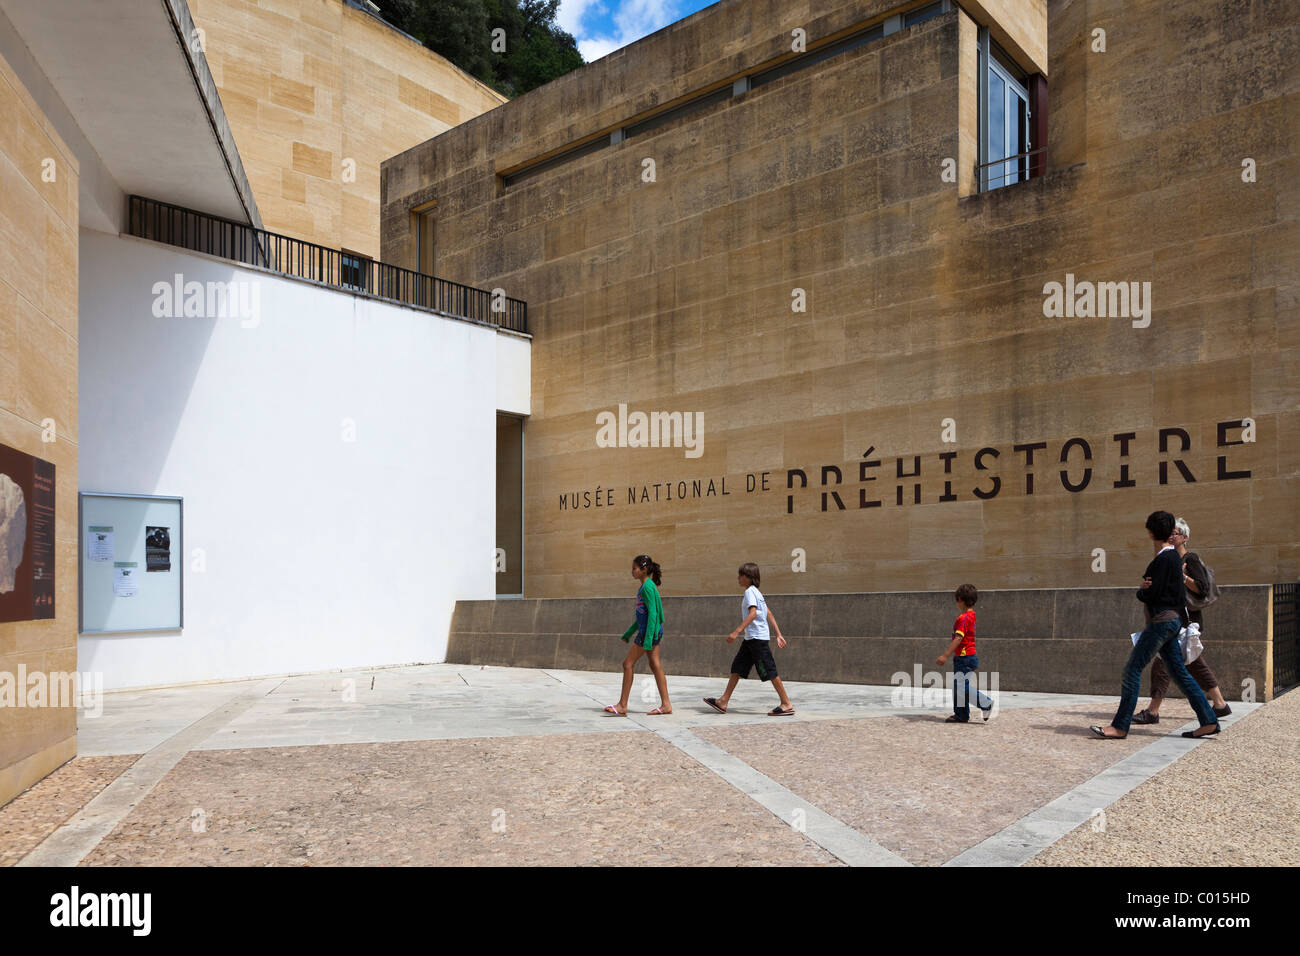 National Museum Of Prehistory France High Resolution Stock Photography And Images Alamy